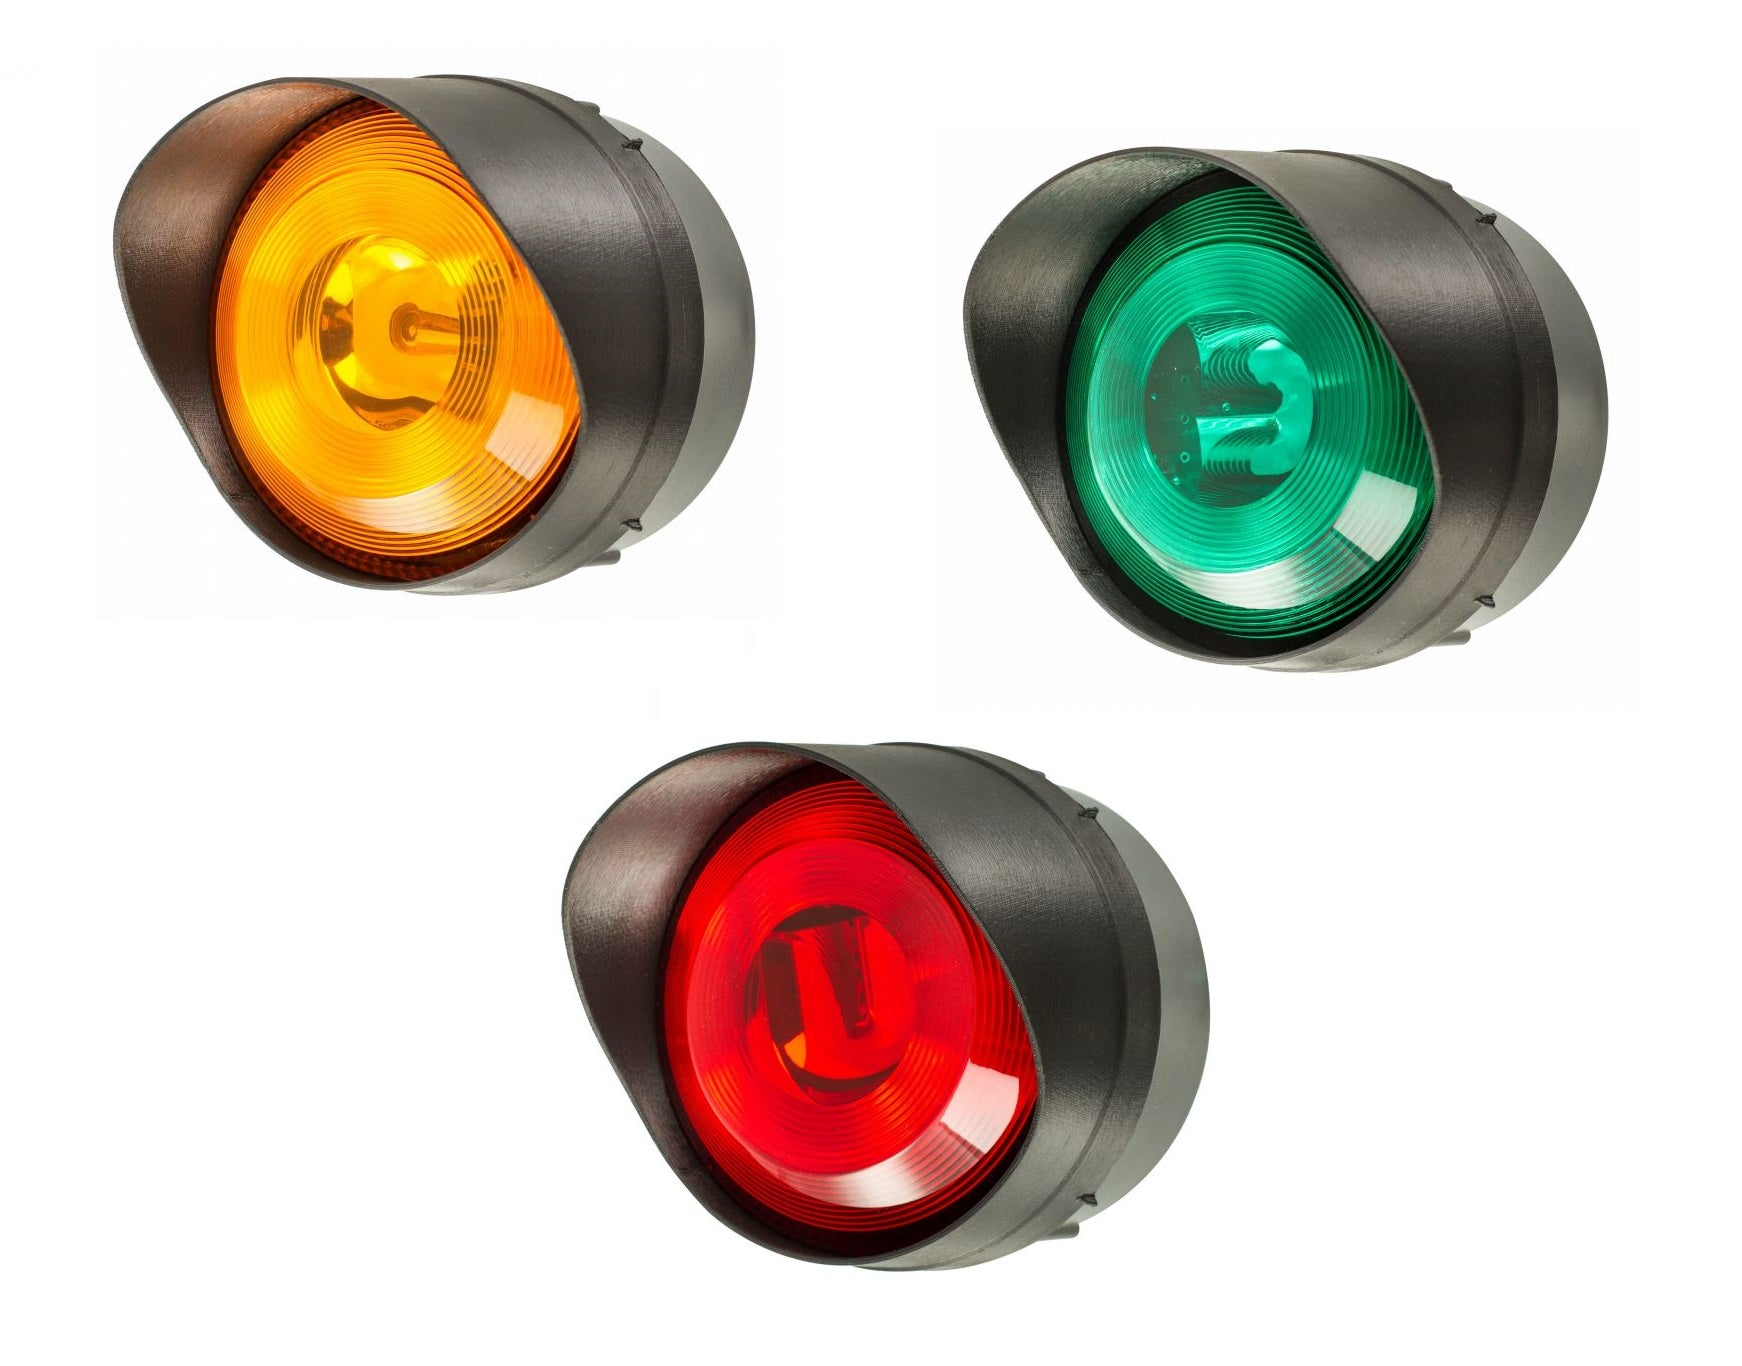 MOFLASH MOFLASH LED TL Series Surface Mount LED Traffic Light Modules - BNR Industrial